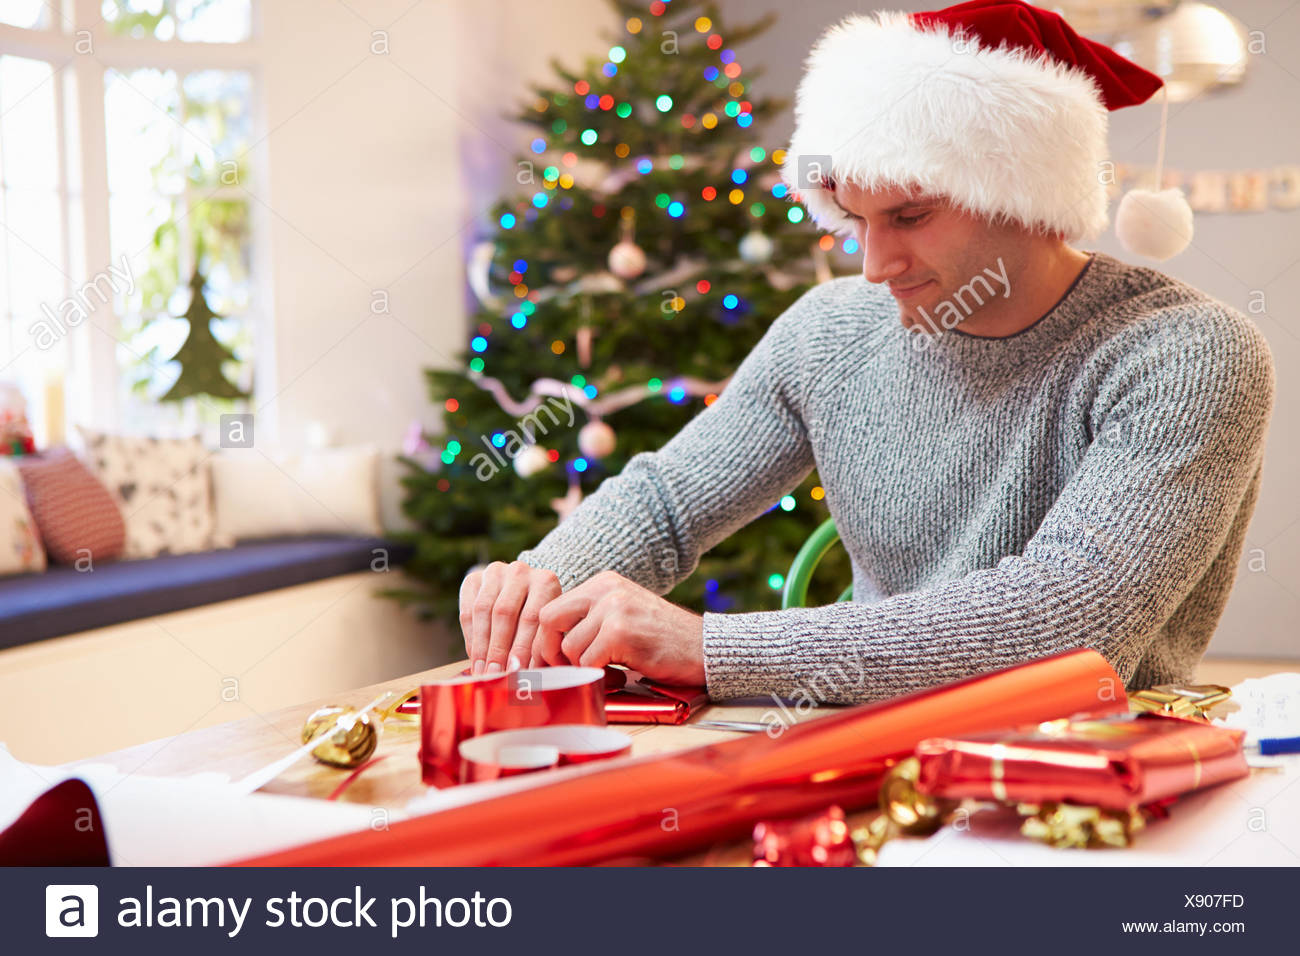 Man Wrapping Christmas Gifts At Home Stock Photo: 280903713 - Alamy